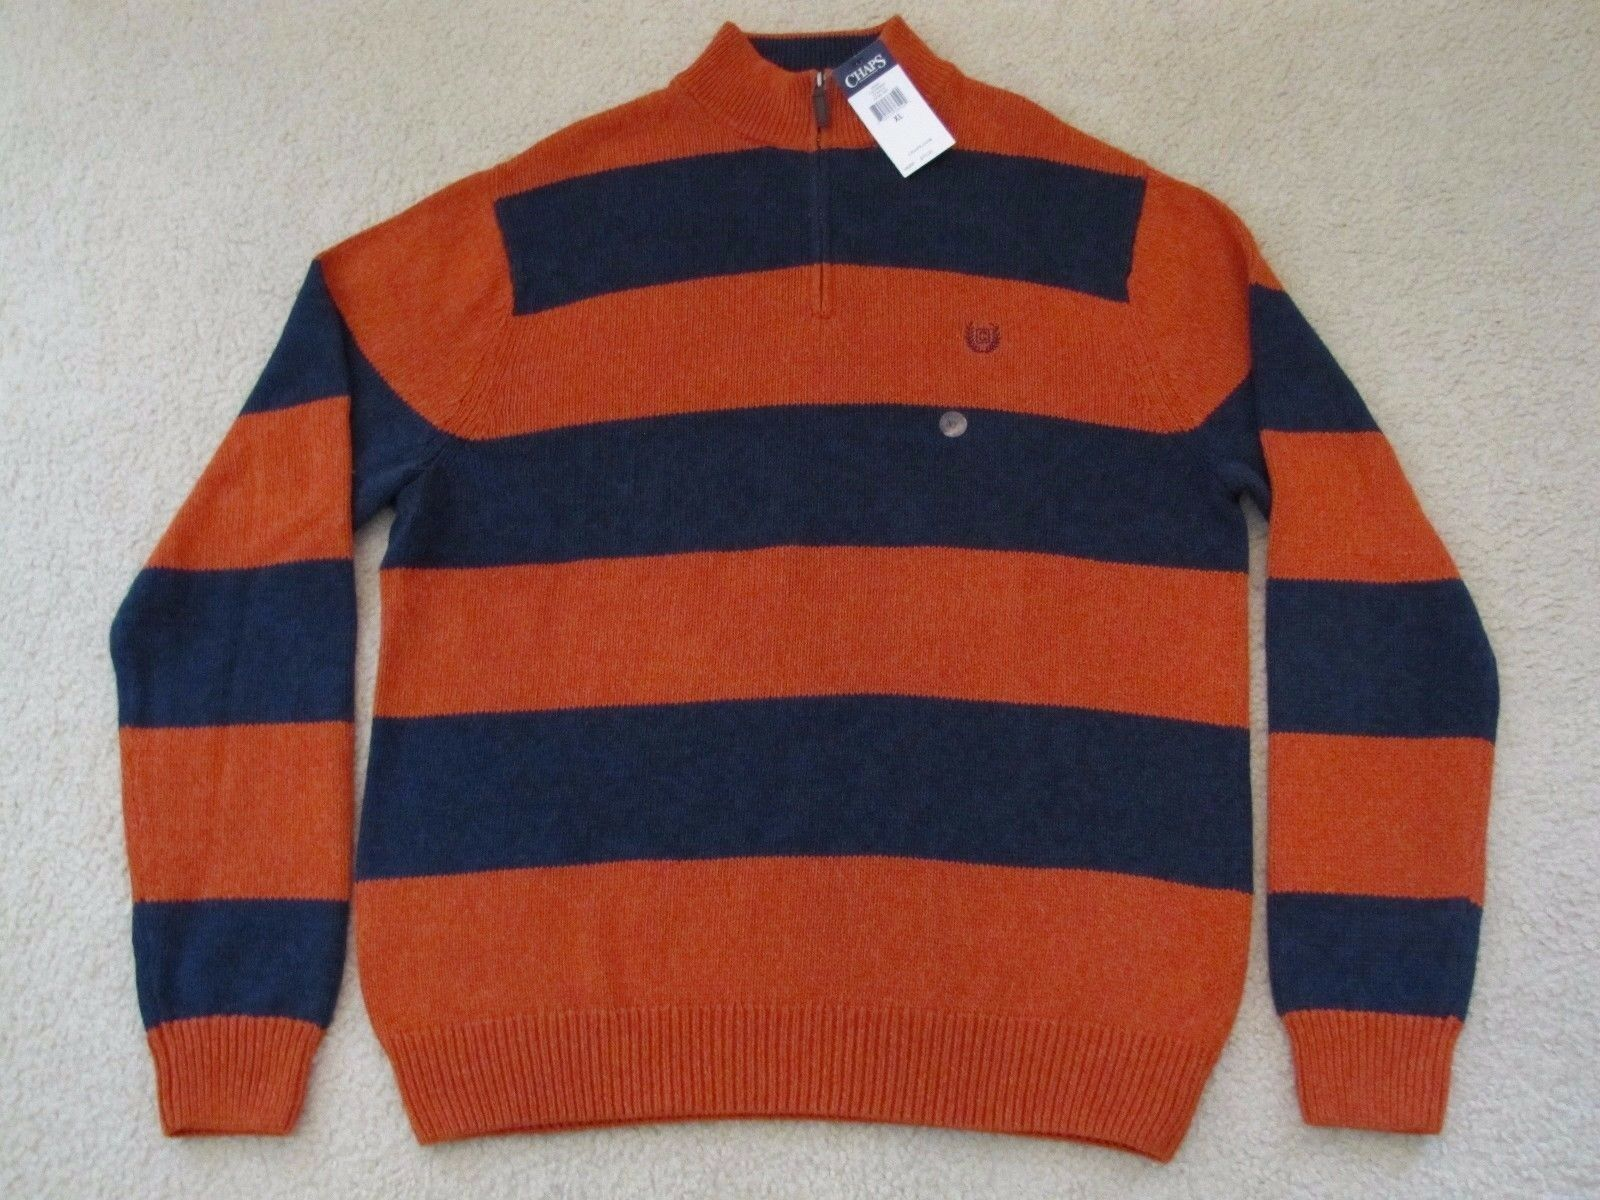 CHAPS COTTON 1 3 ZIP BULKY KNIT SWEATER - EXTRA LARGE - NEWwTAGS